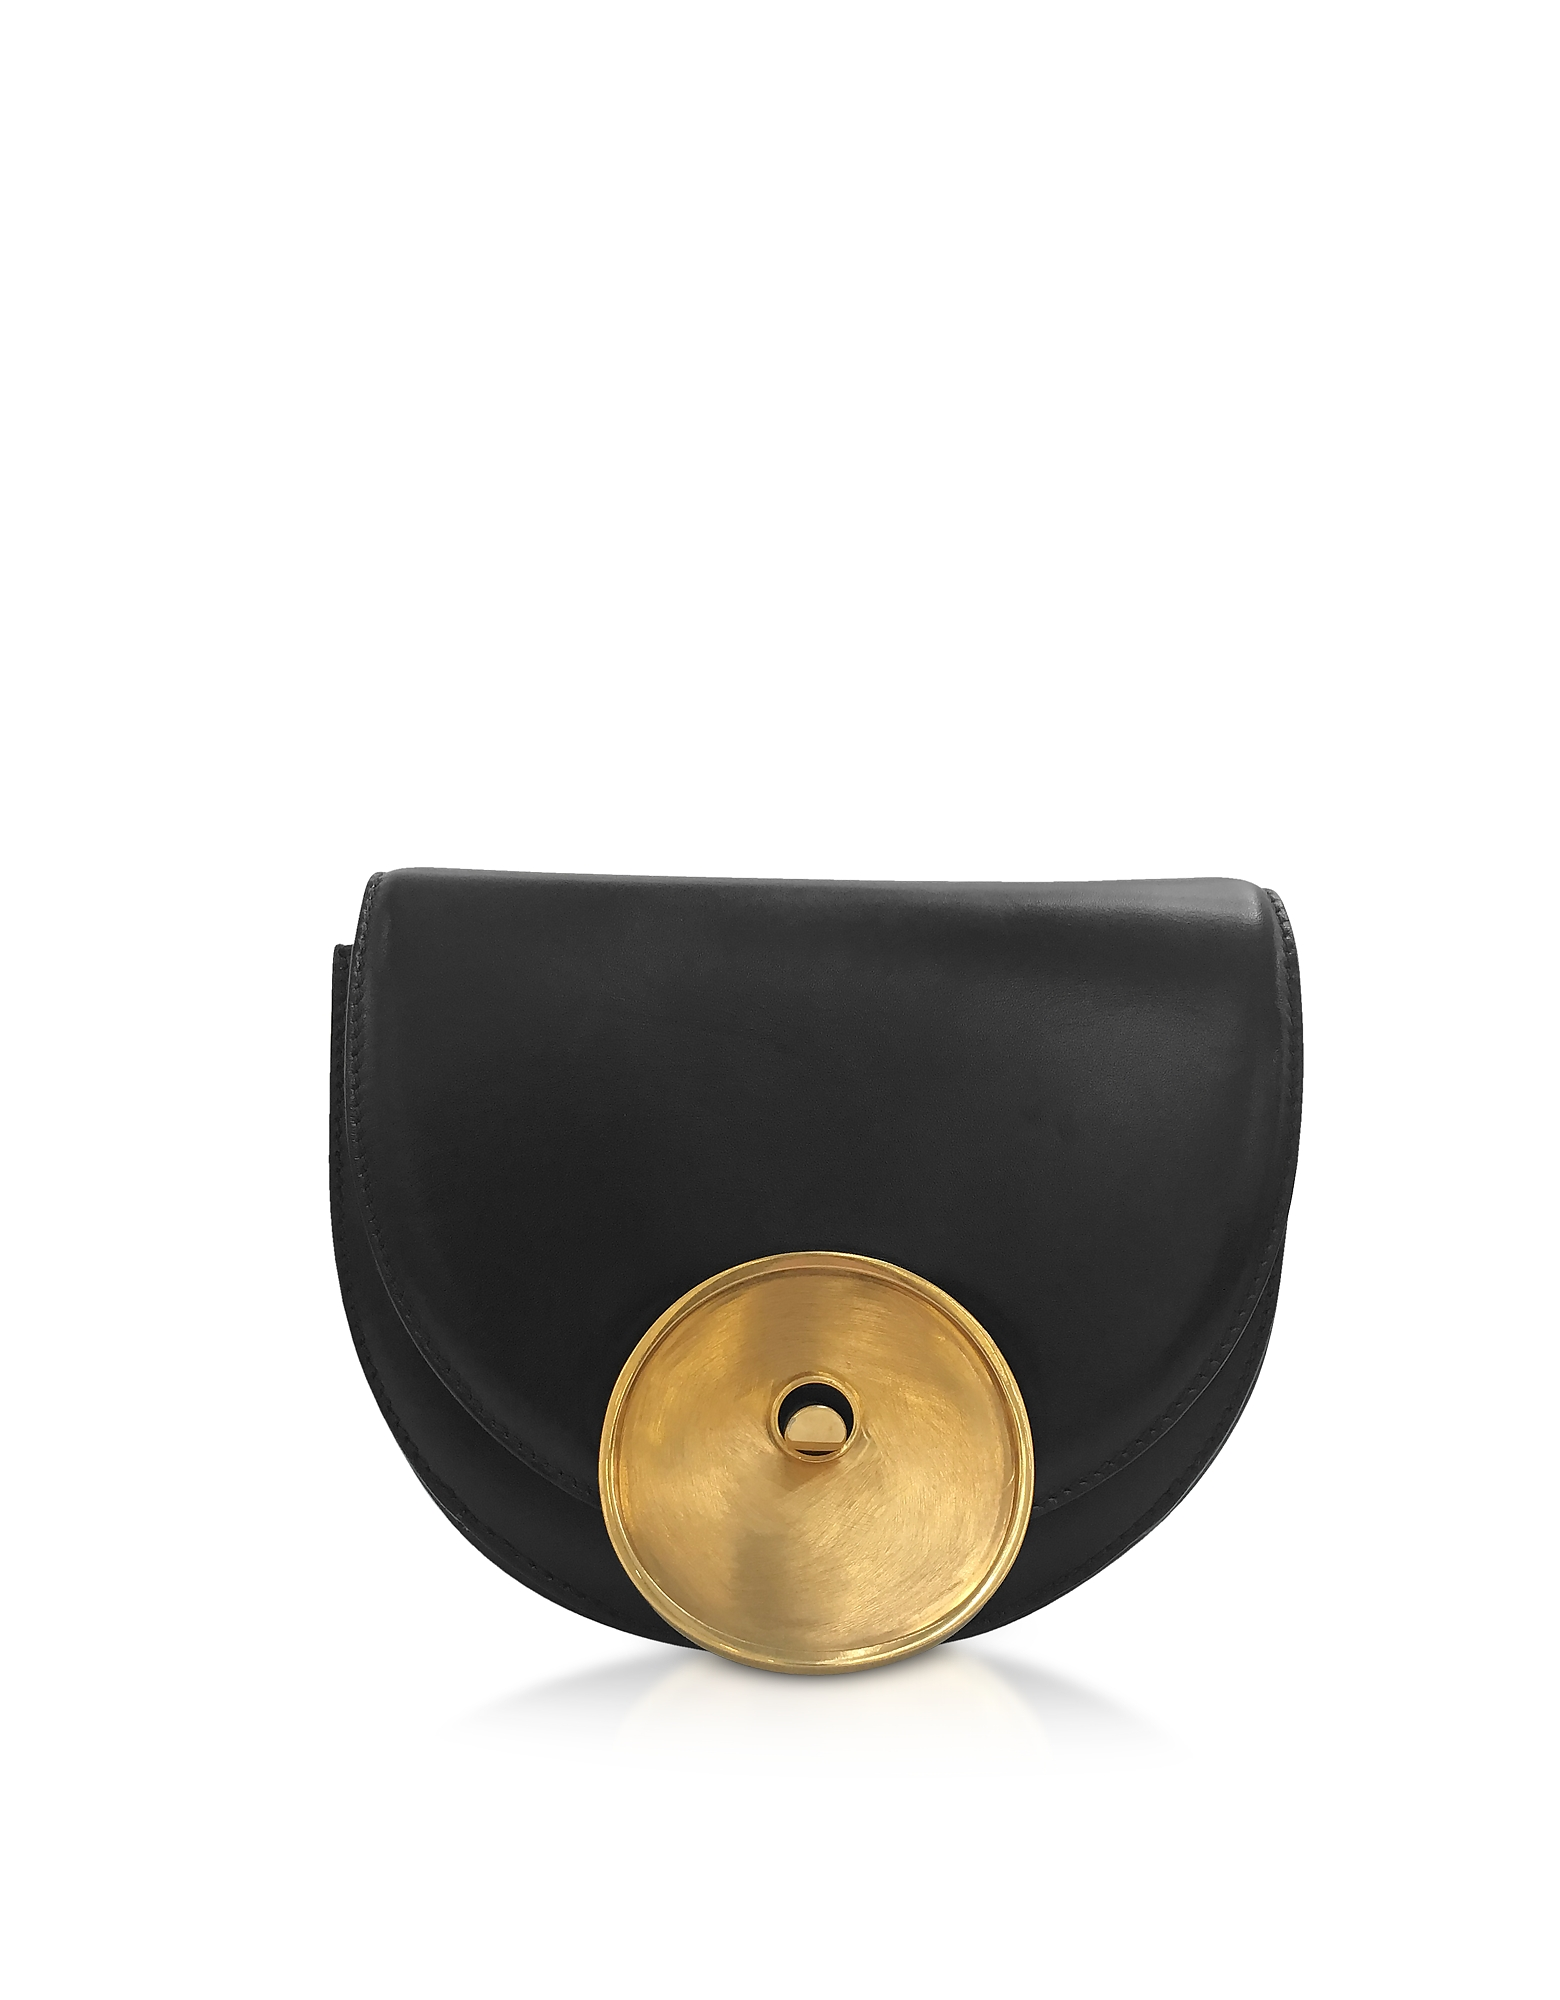 Marni Handbags, Black Leather Monile Bag